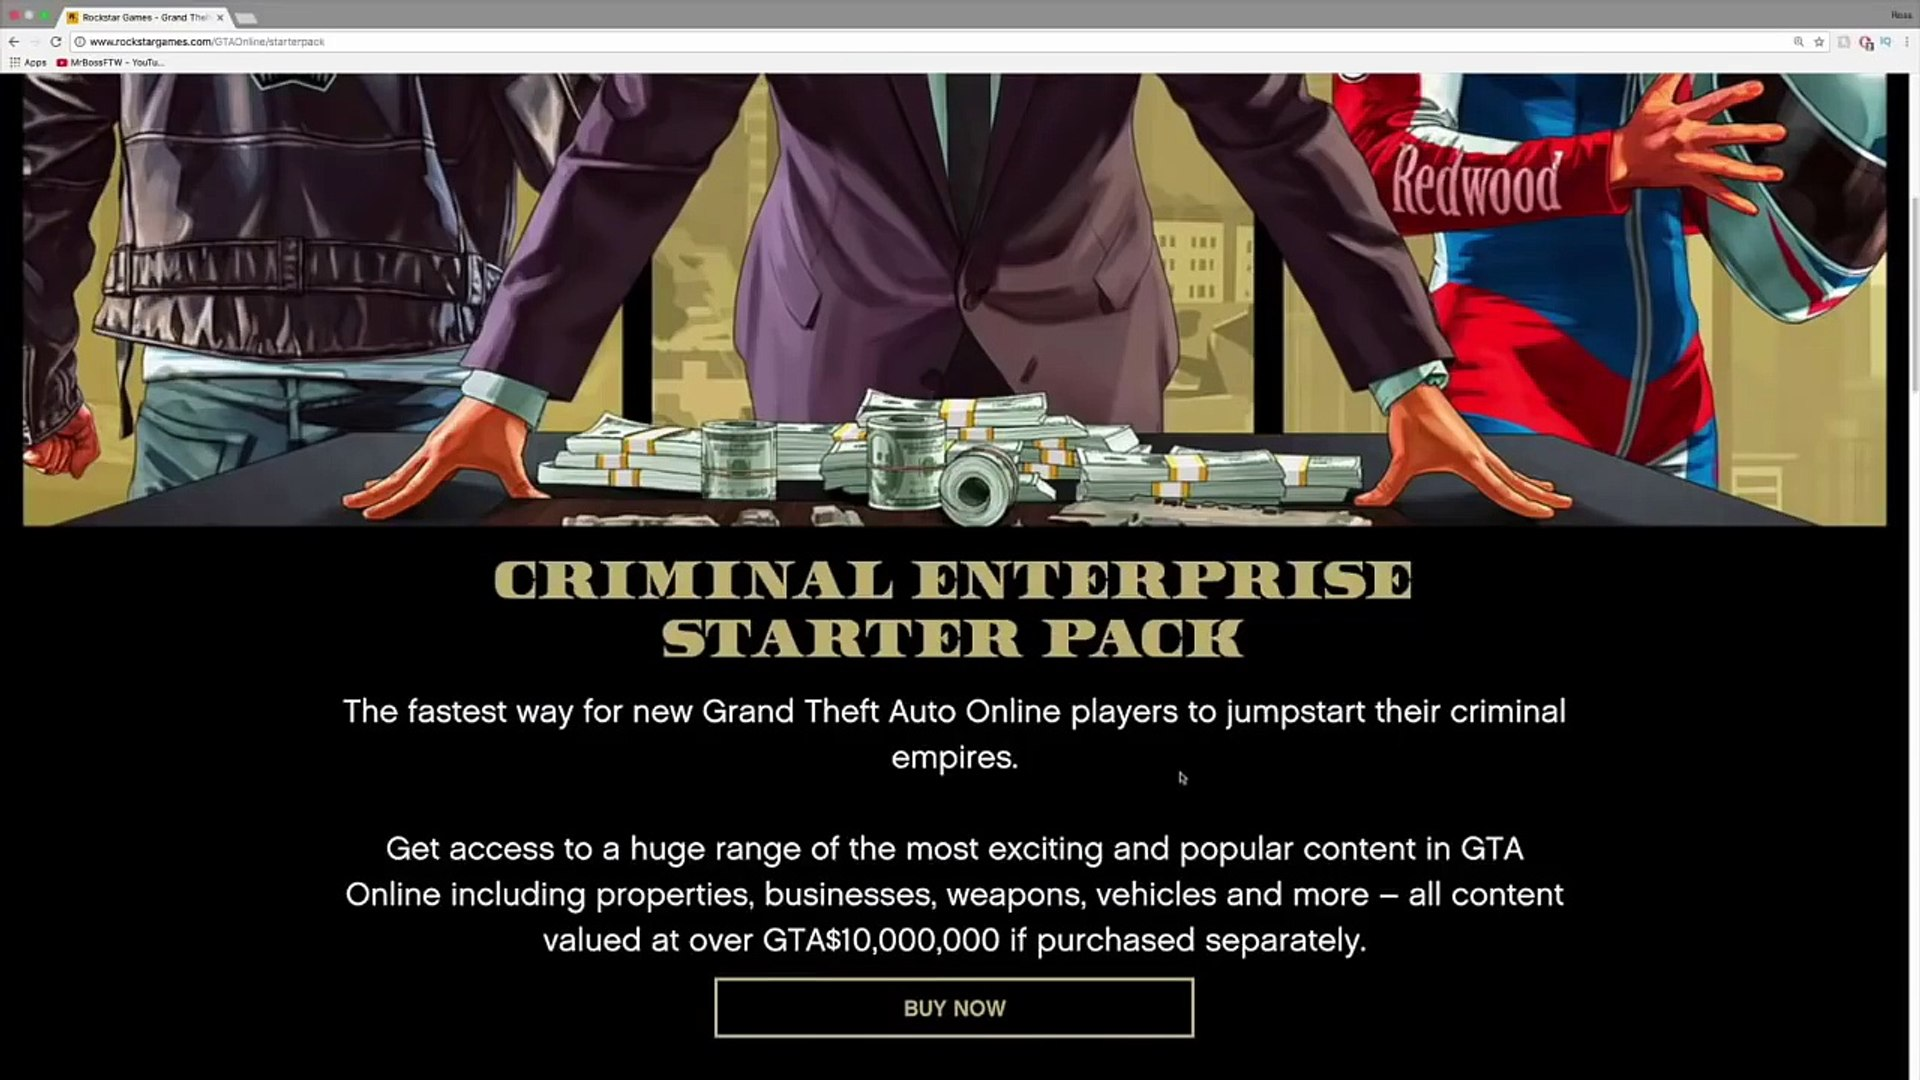 What Happens When You Buy The Criminal Enterprise Starter Pack But Already  Own All Of the Content?